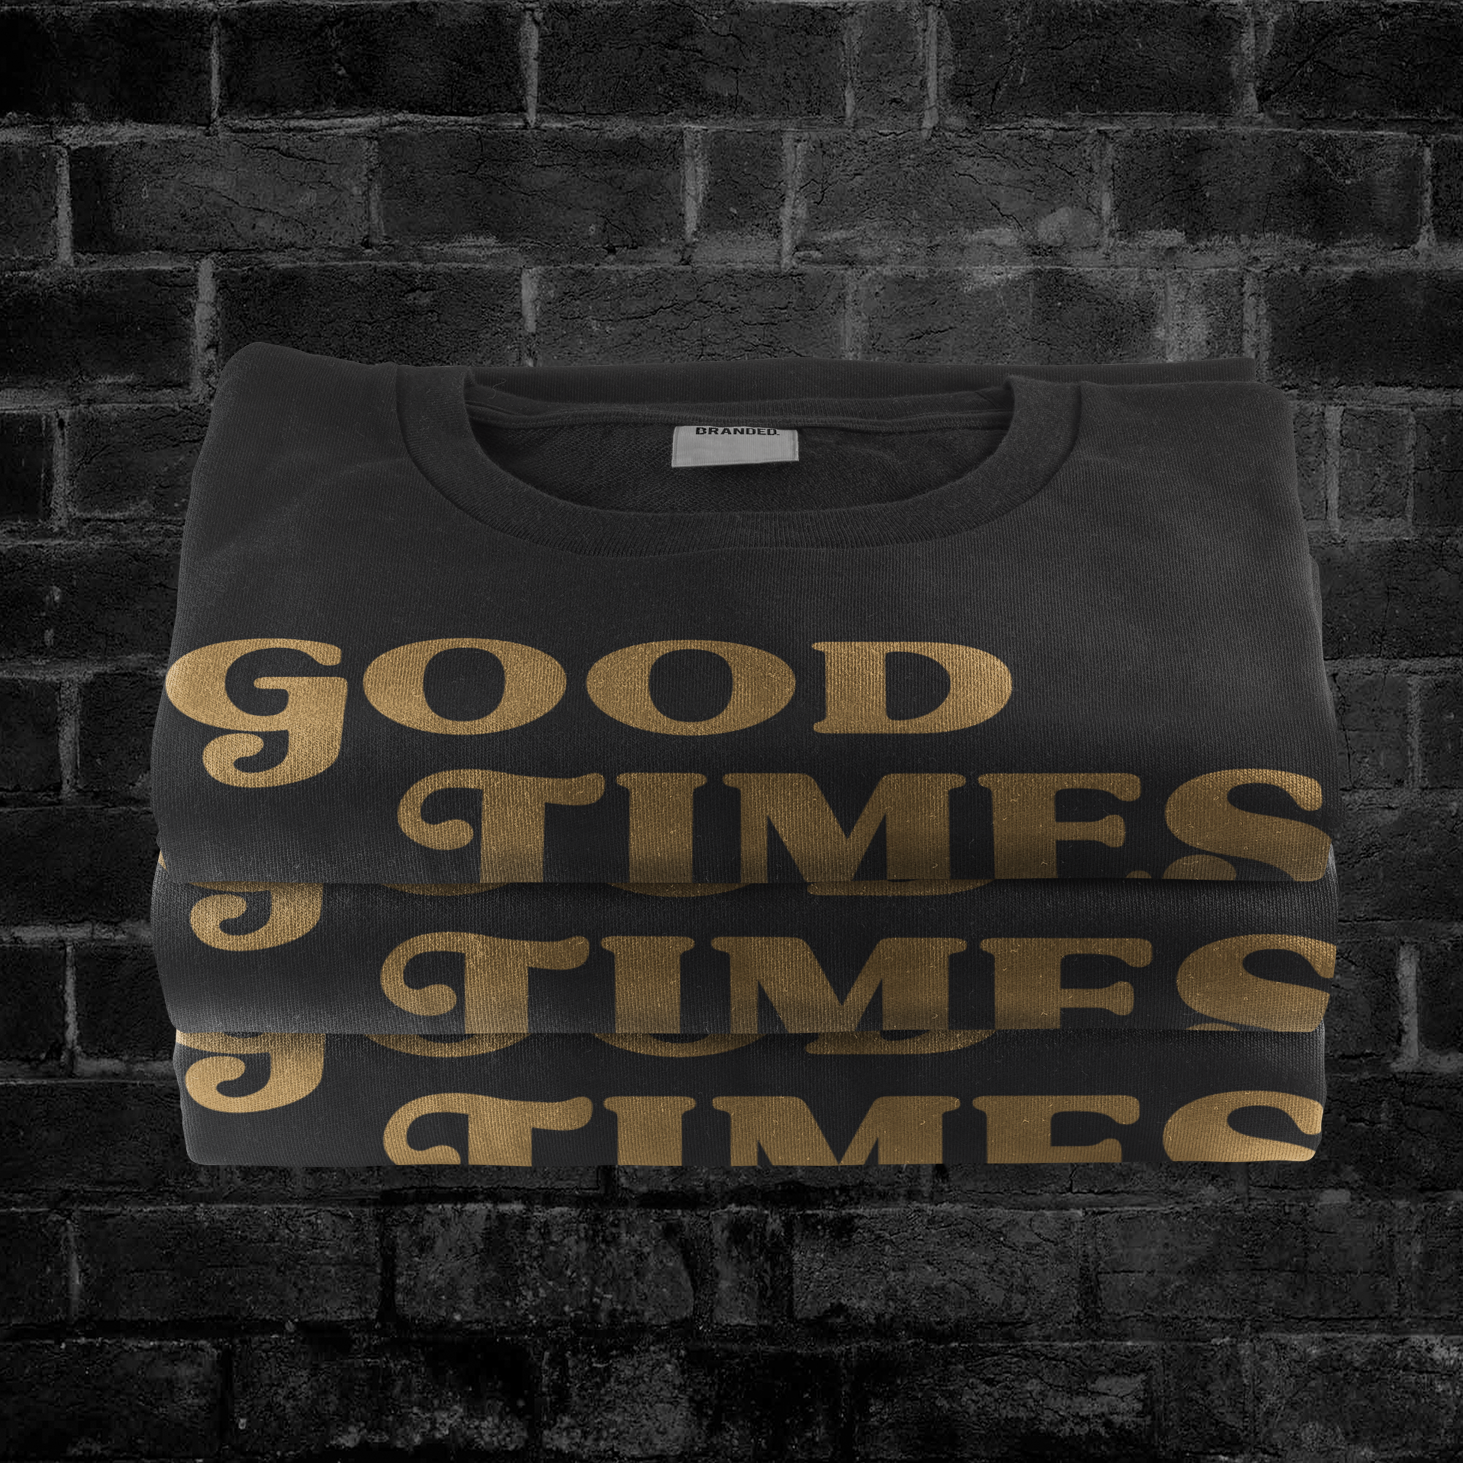 GOOD TIMES CLASSIC (GOLD) #goodtimeslogo